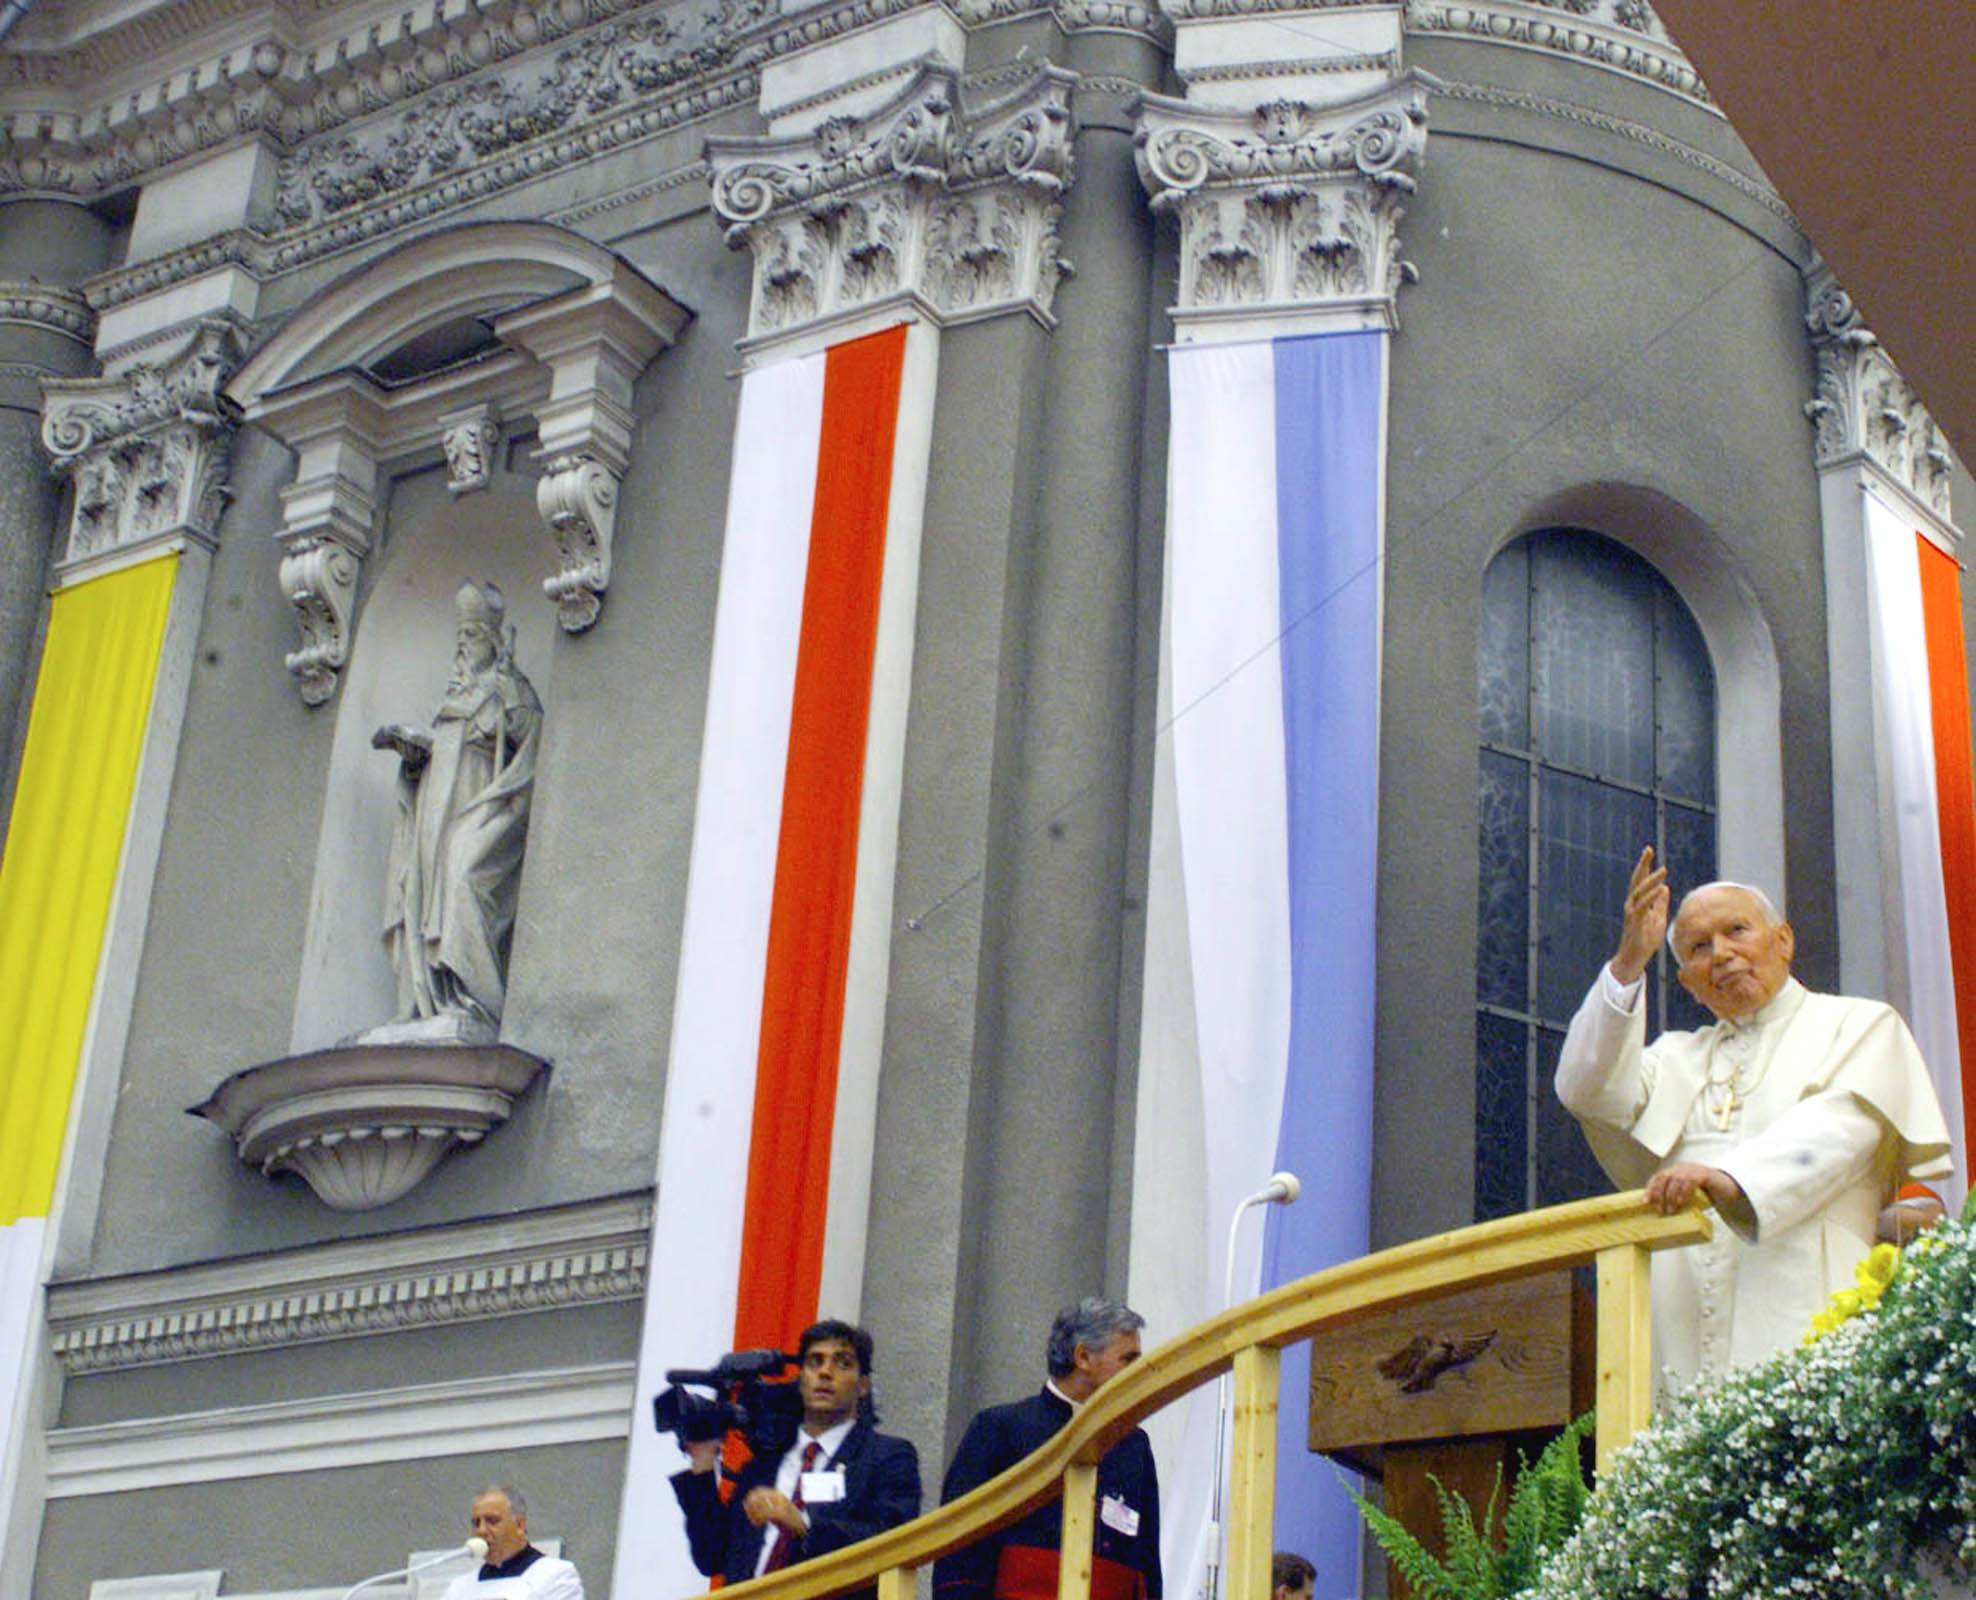 In 1999, Pope John Paul II waves from outside the basilica during his visit to Wadowice, Poland, the town where he was born and grew up. The basilica was his parish church, where he was baptized, served as an altar boy and stopped to pray on his way to school. A central point in Wadowice, the basilica has a chapel dedicated to John Paul with a reliquary containing a drop of his blood.